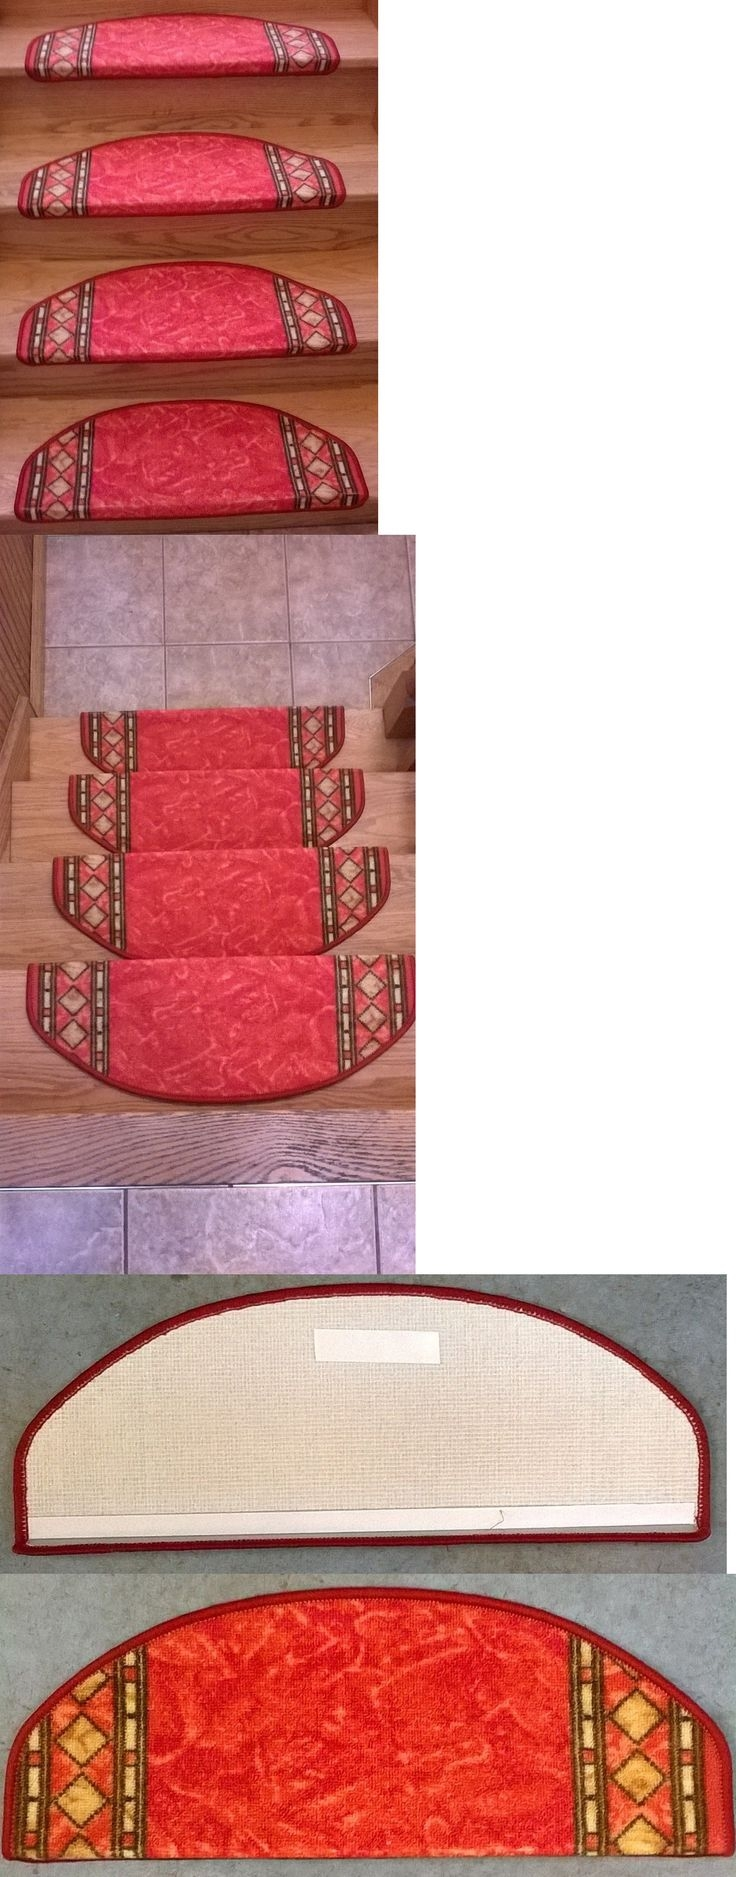 25 Best Stair Treads Ideas On Pinterest Wood Stair Treads Redo Within Carpet Stair Treads Set Of  (Image 2 of 15)